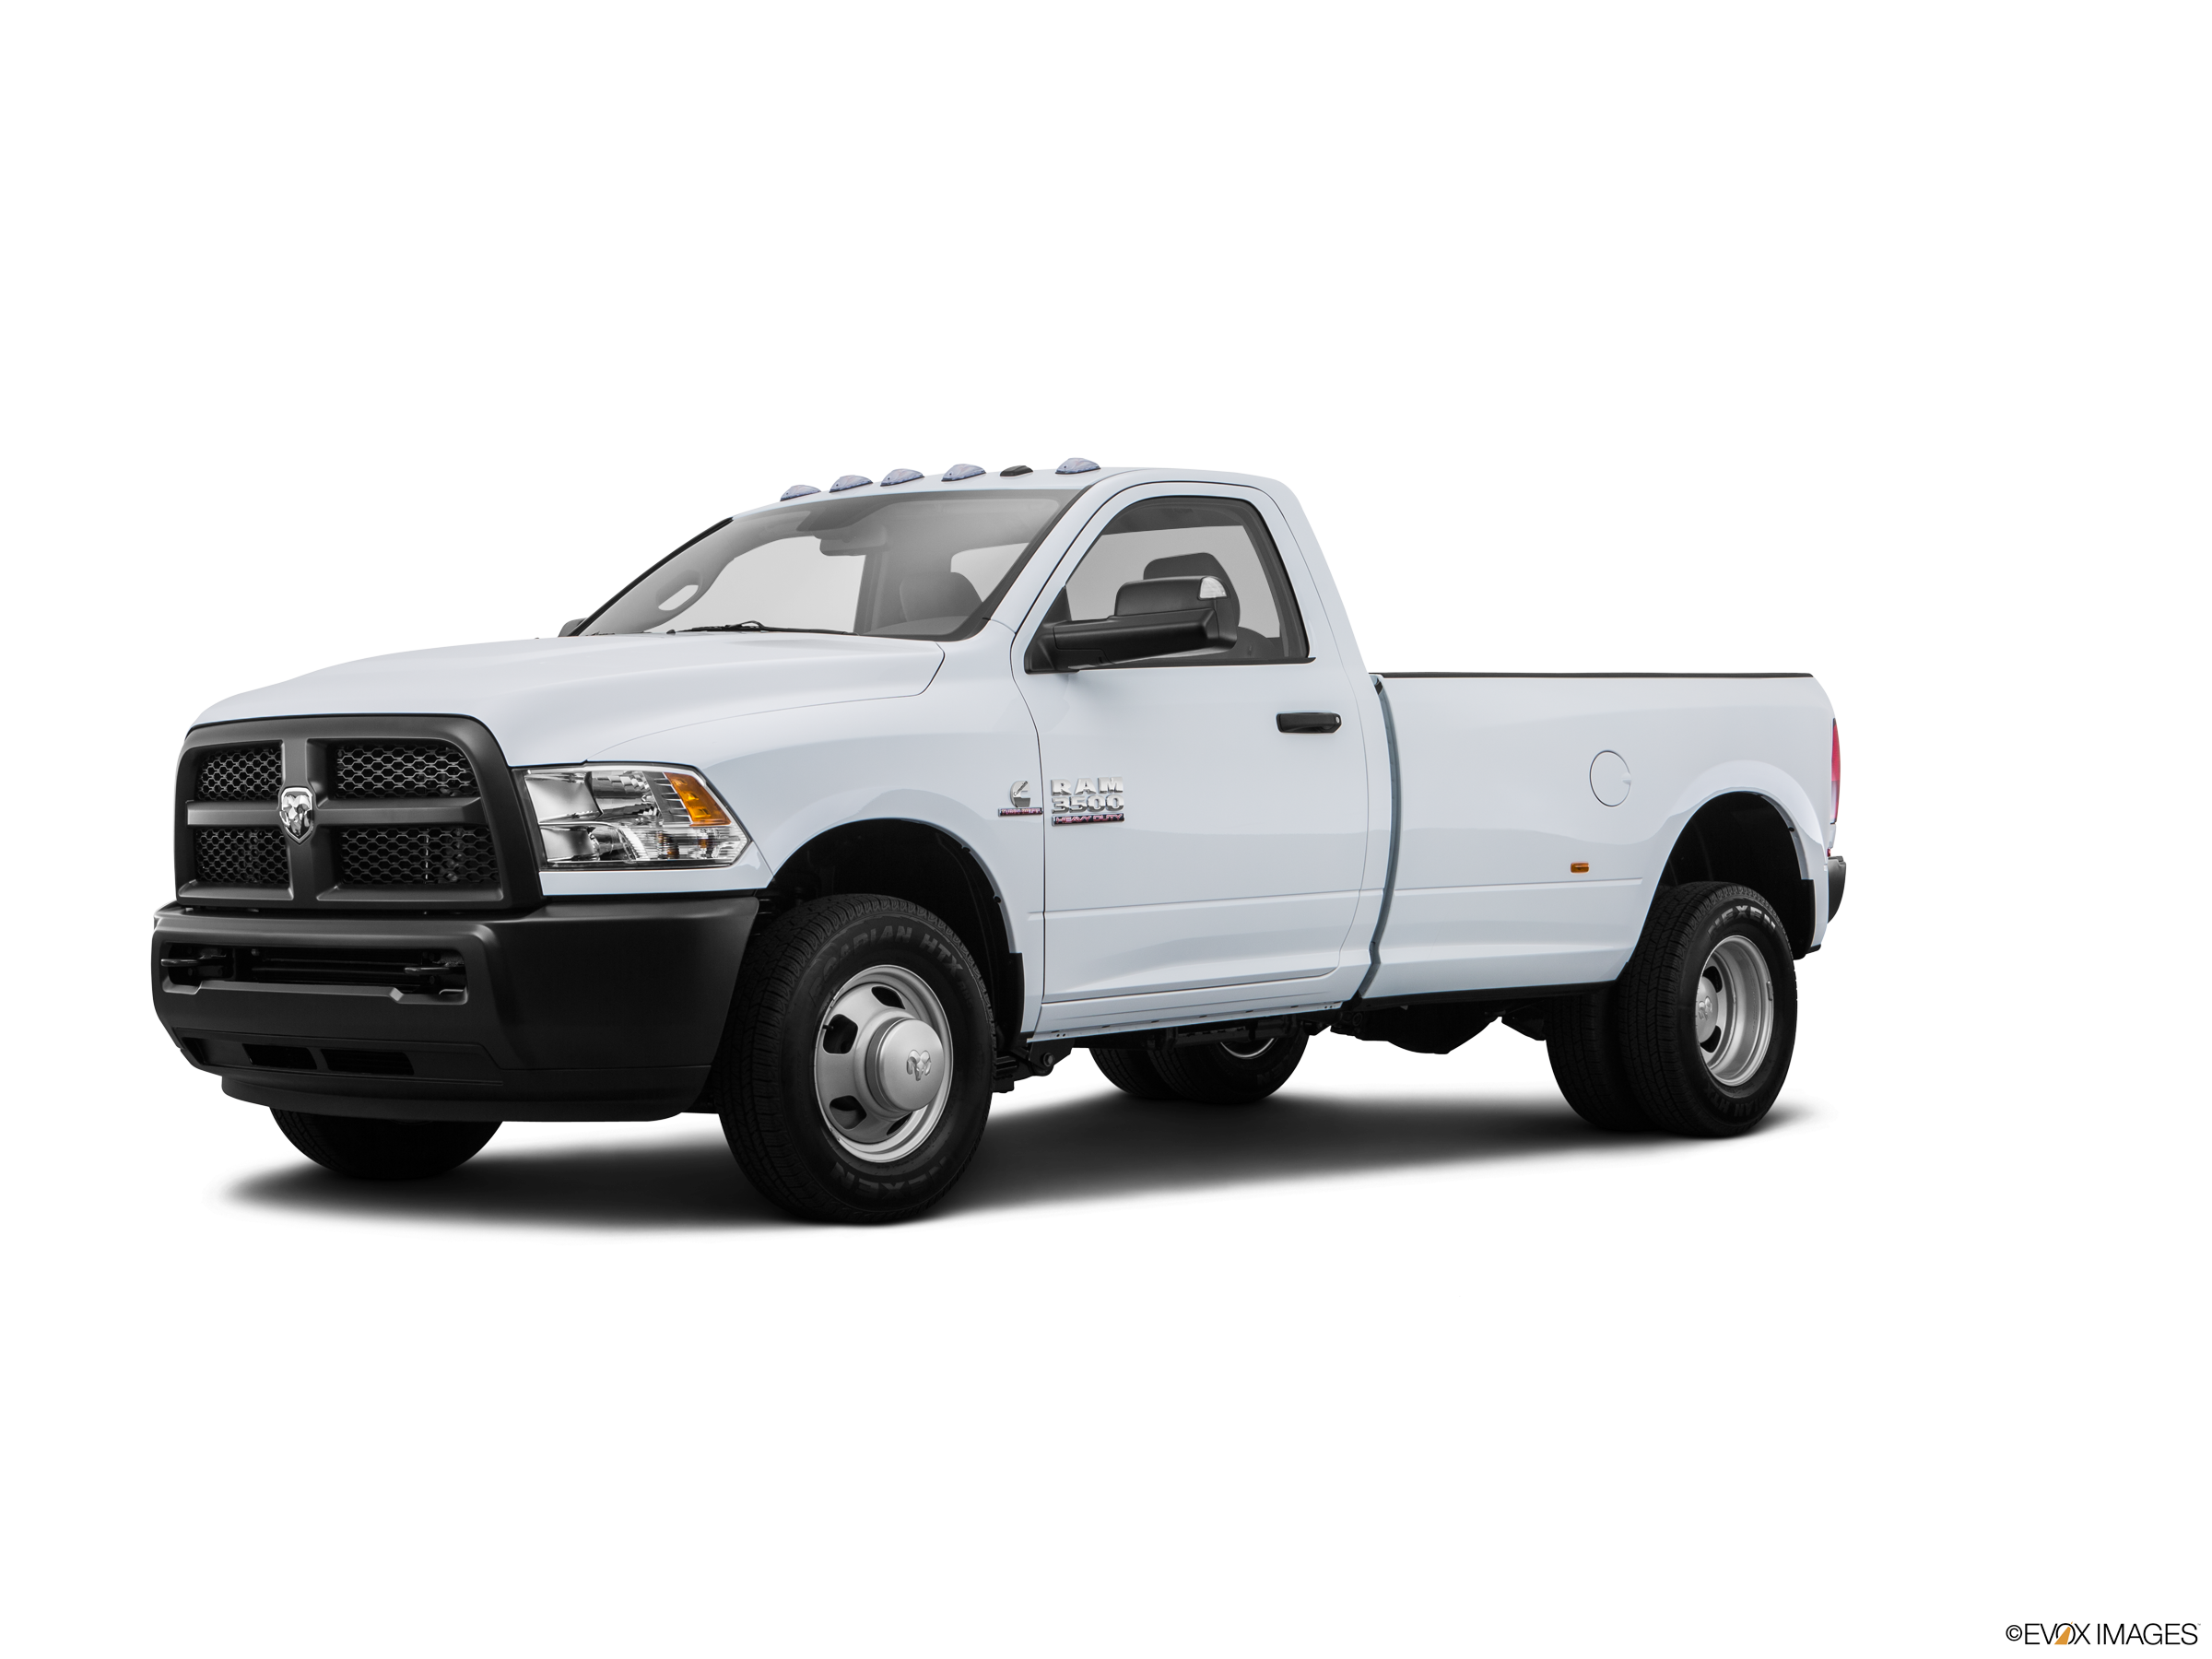 2016 Ram 3500 Trucks Values Cars For Sale Kelley Blue Book